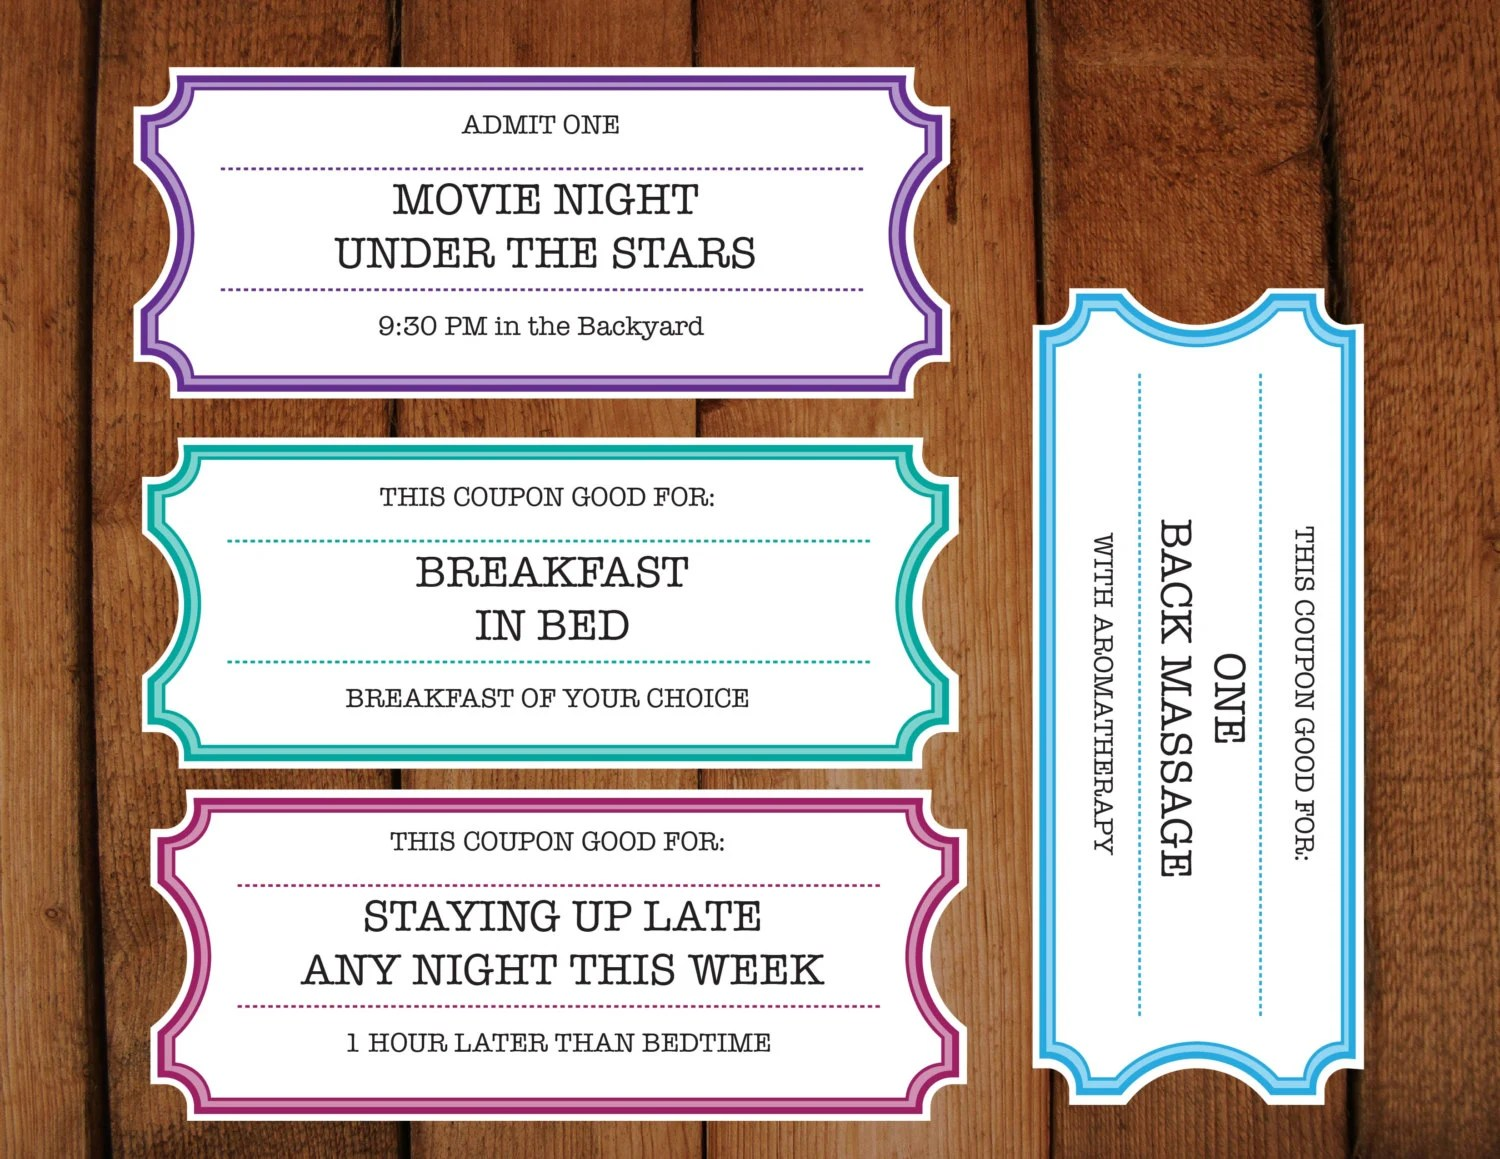 Printable Coupons \/ Tickets \/ Vouchers DIY Printable - create your own movie ticket